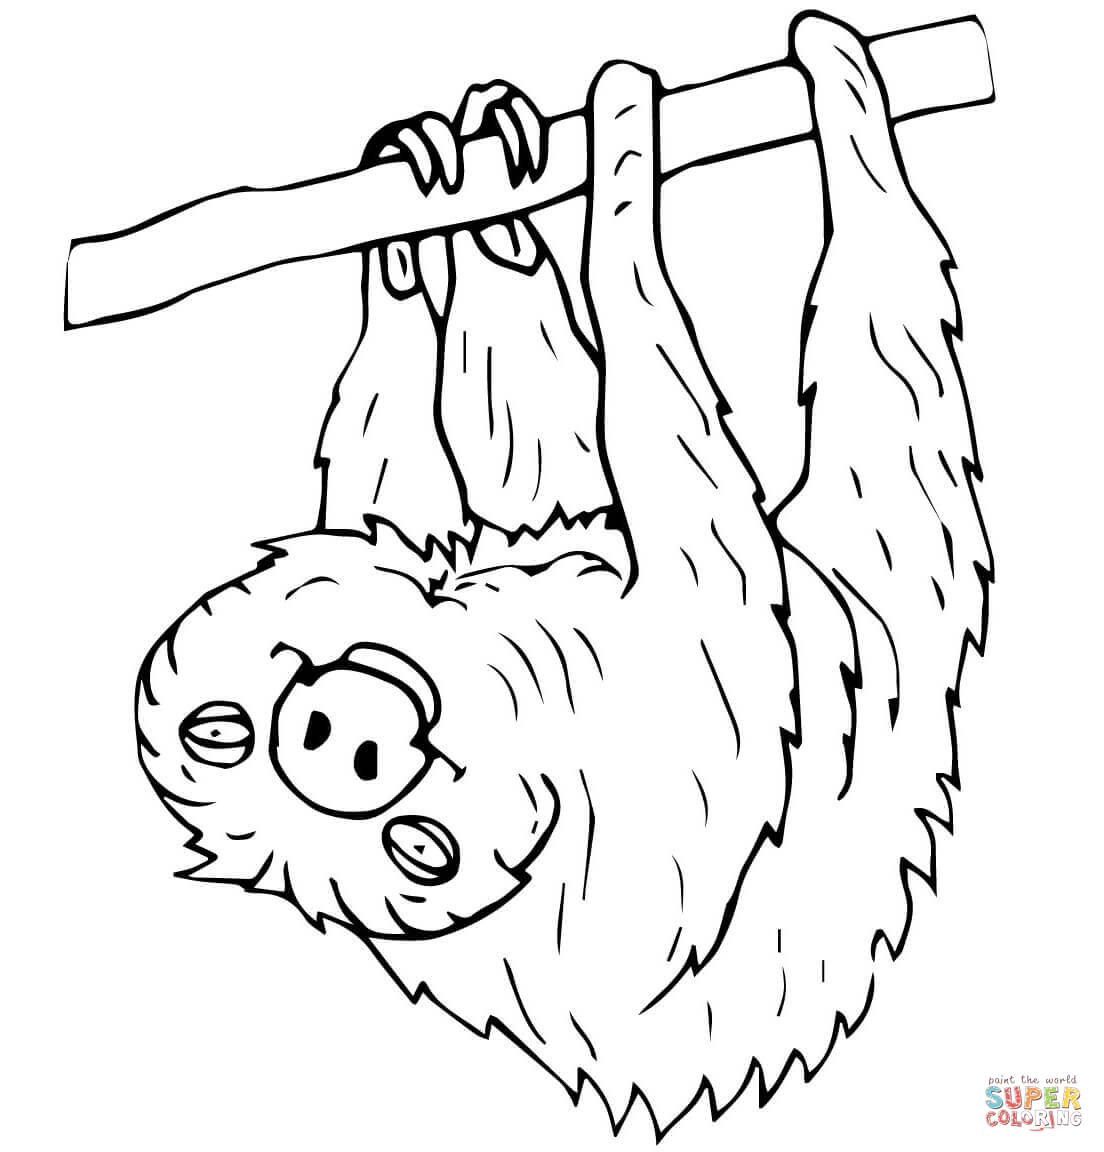 Sloth coloring #3, Download drawings